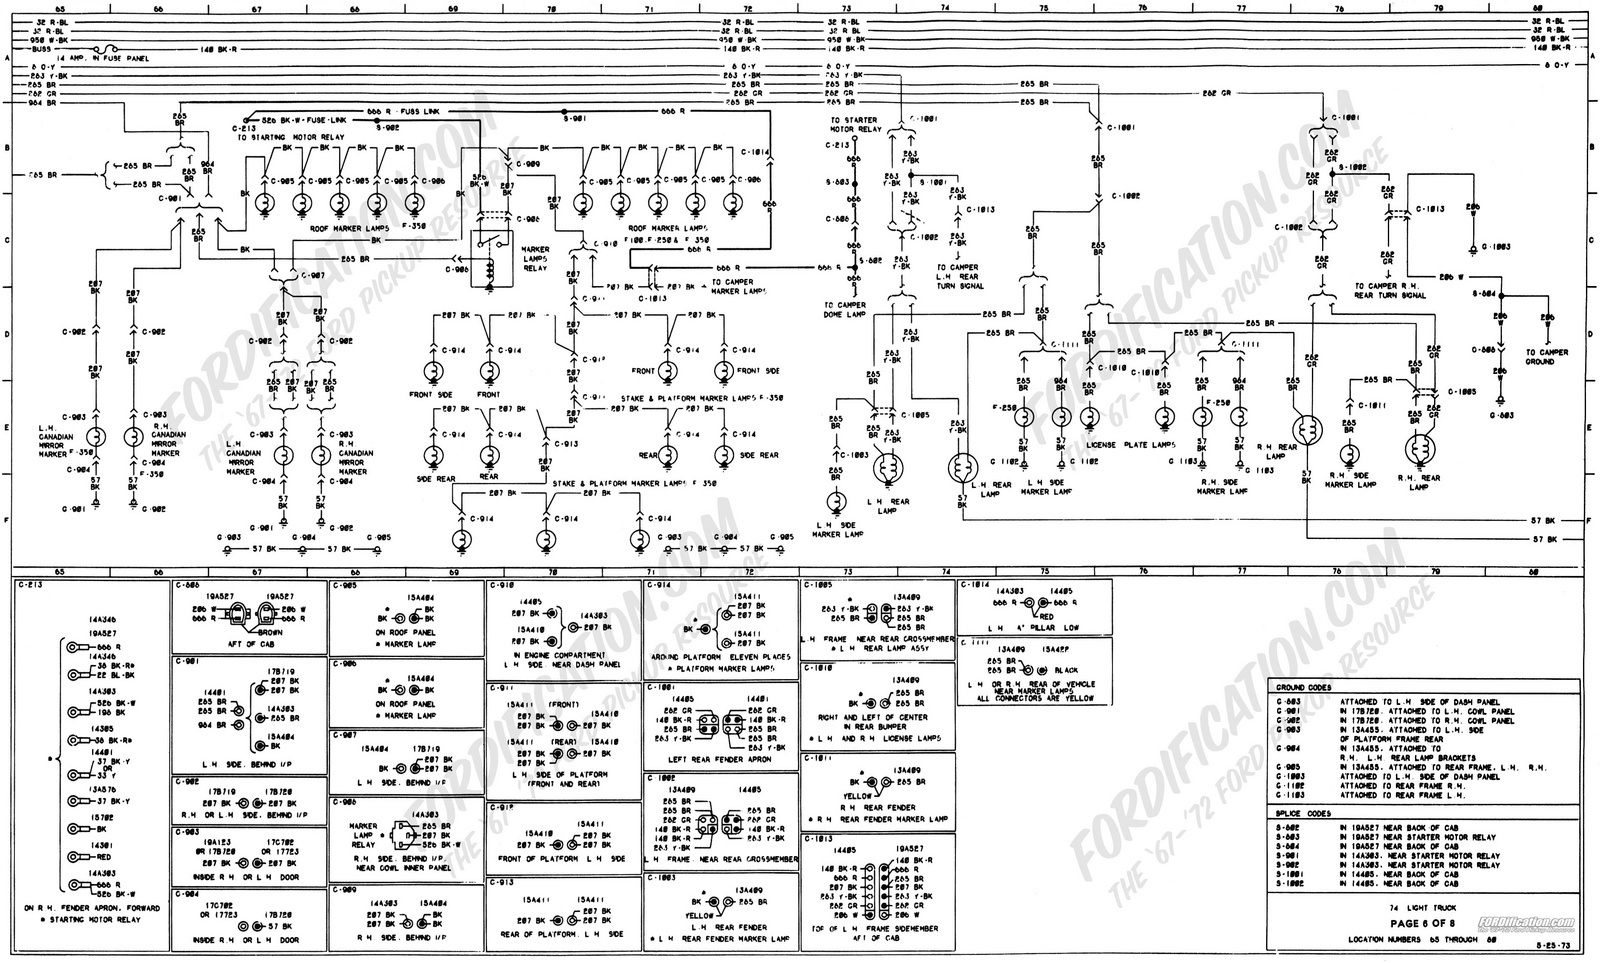 1978 F350 Fuse Box - Wiring Diagram Progresif  Mustang Alternator Wiring Diagram on 71 chevelle alternator wiring, 93 mustang alternator wiring, 86 mustang alternator wiring, 87 mustang alternator wiring, 98 mustang alternator wiring, 89 mustang alternator wiring, 68 camaro alternator wiring,